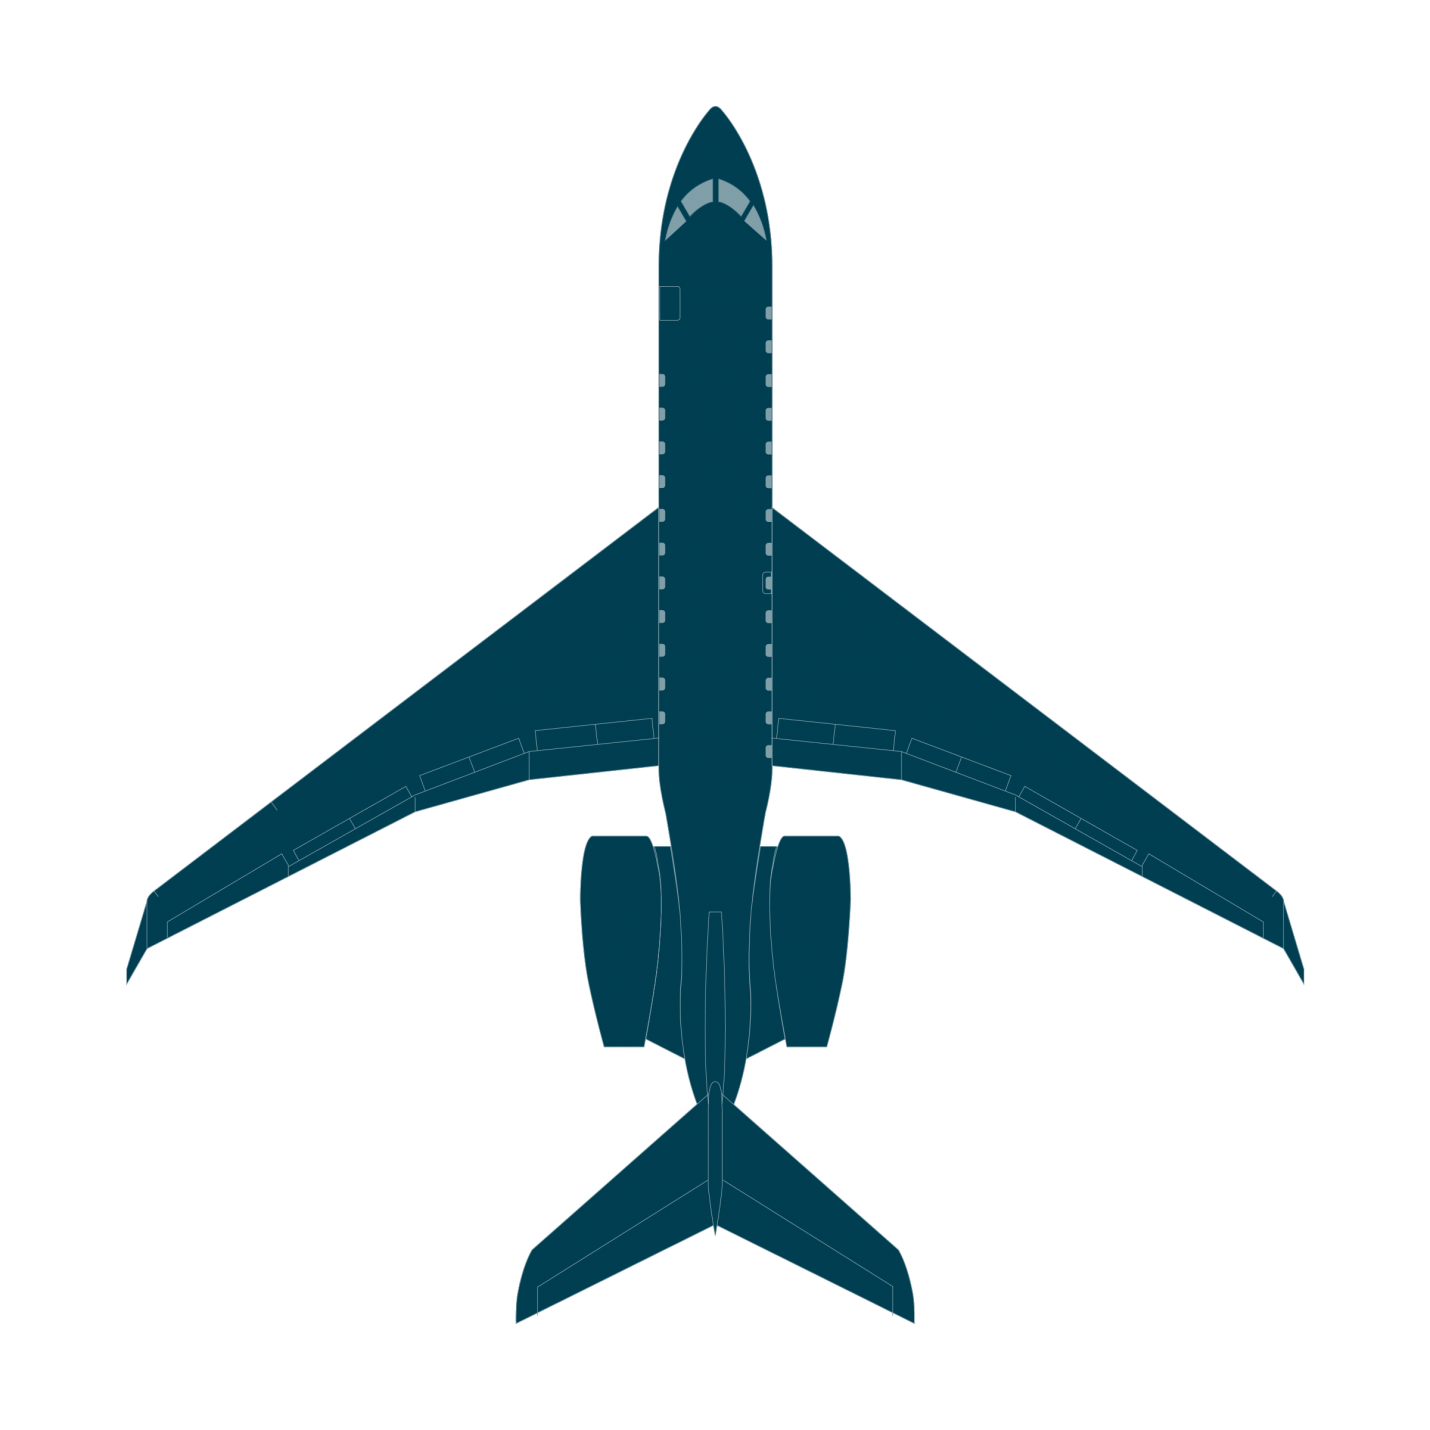 Cessna drawing plan view. Global bombardier business aircraft